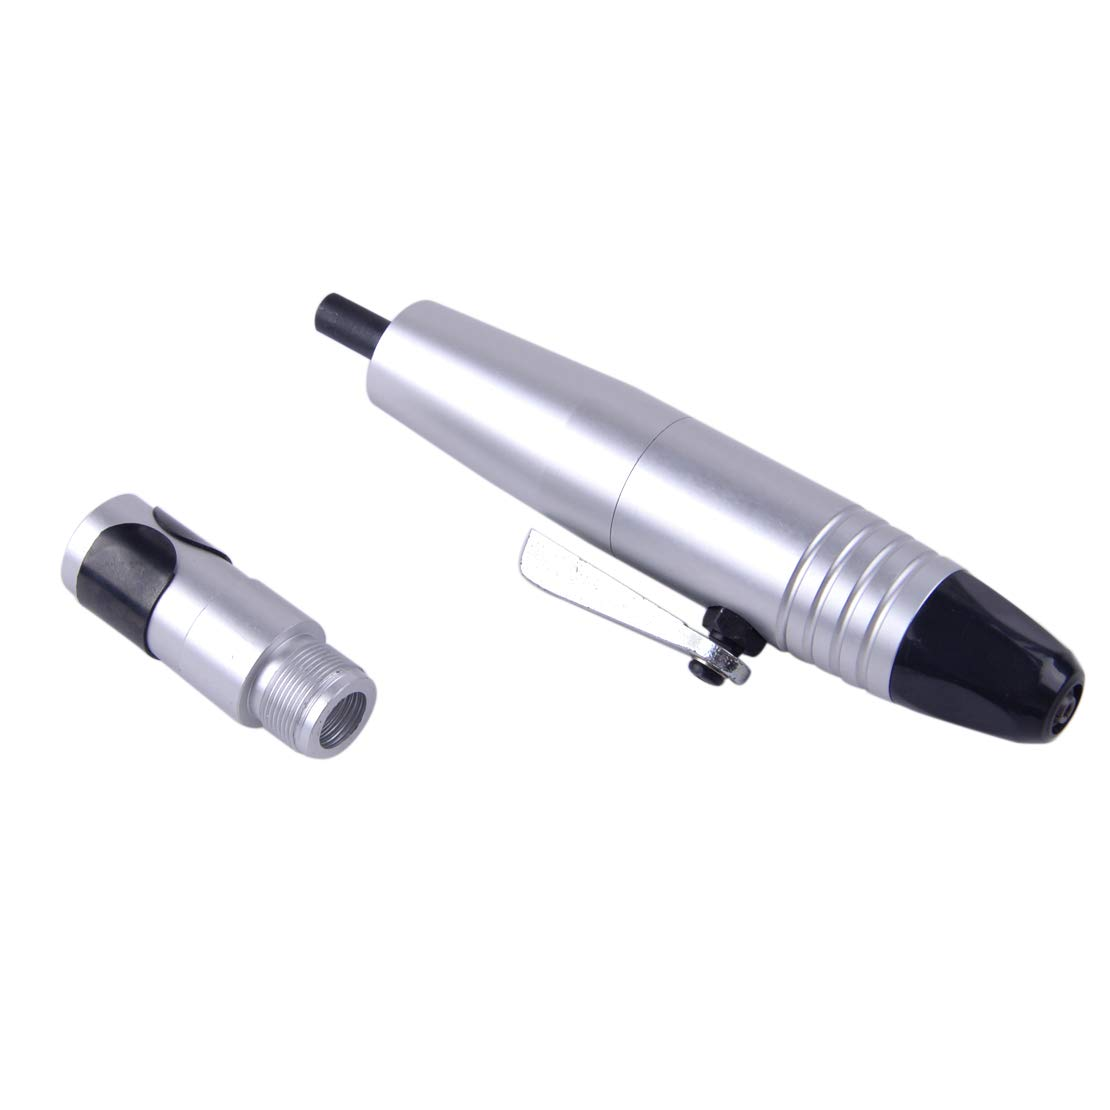 Rotary Handpiece Quick Change Foredom Shaft Flex Tool Suits for Shank Jewelry Reamer